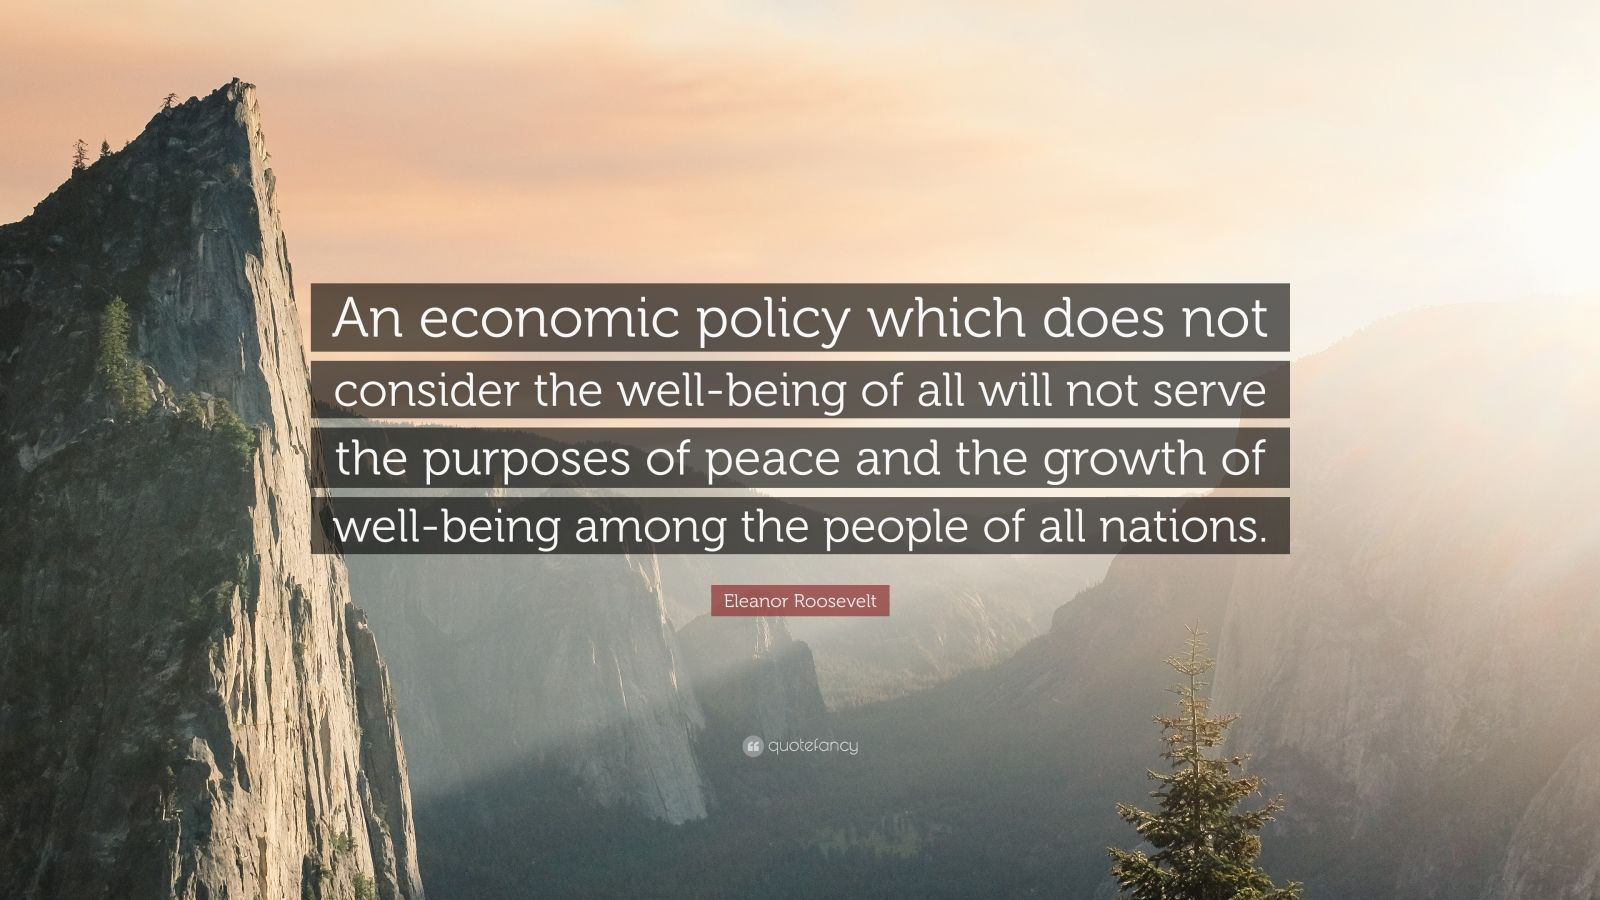 """Eleanor Roosevelt Quote: """"An economic policy which does not consider the well-being of all will not serve the purposes of peace and the growth of well-being among the people of all nations."""""""